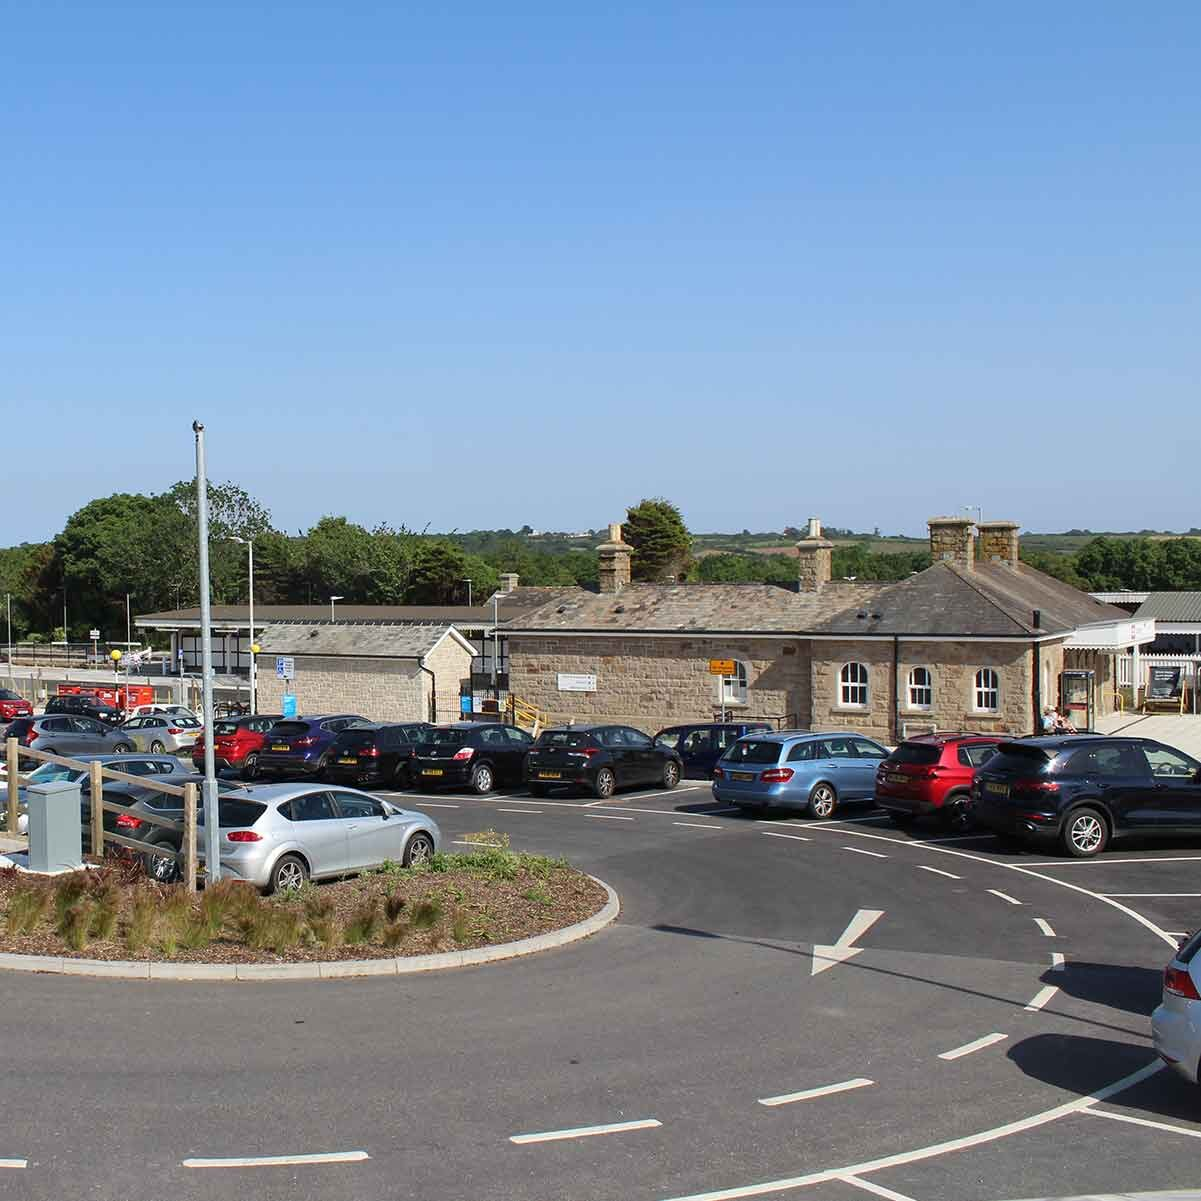 St Erth railway station's north car park